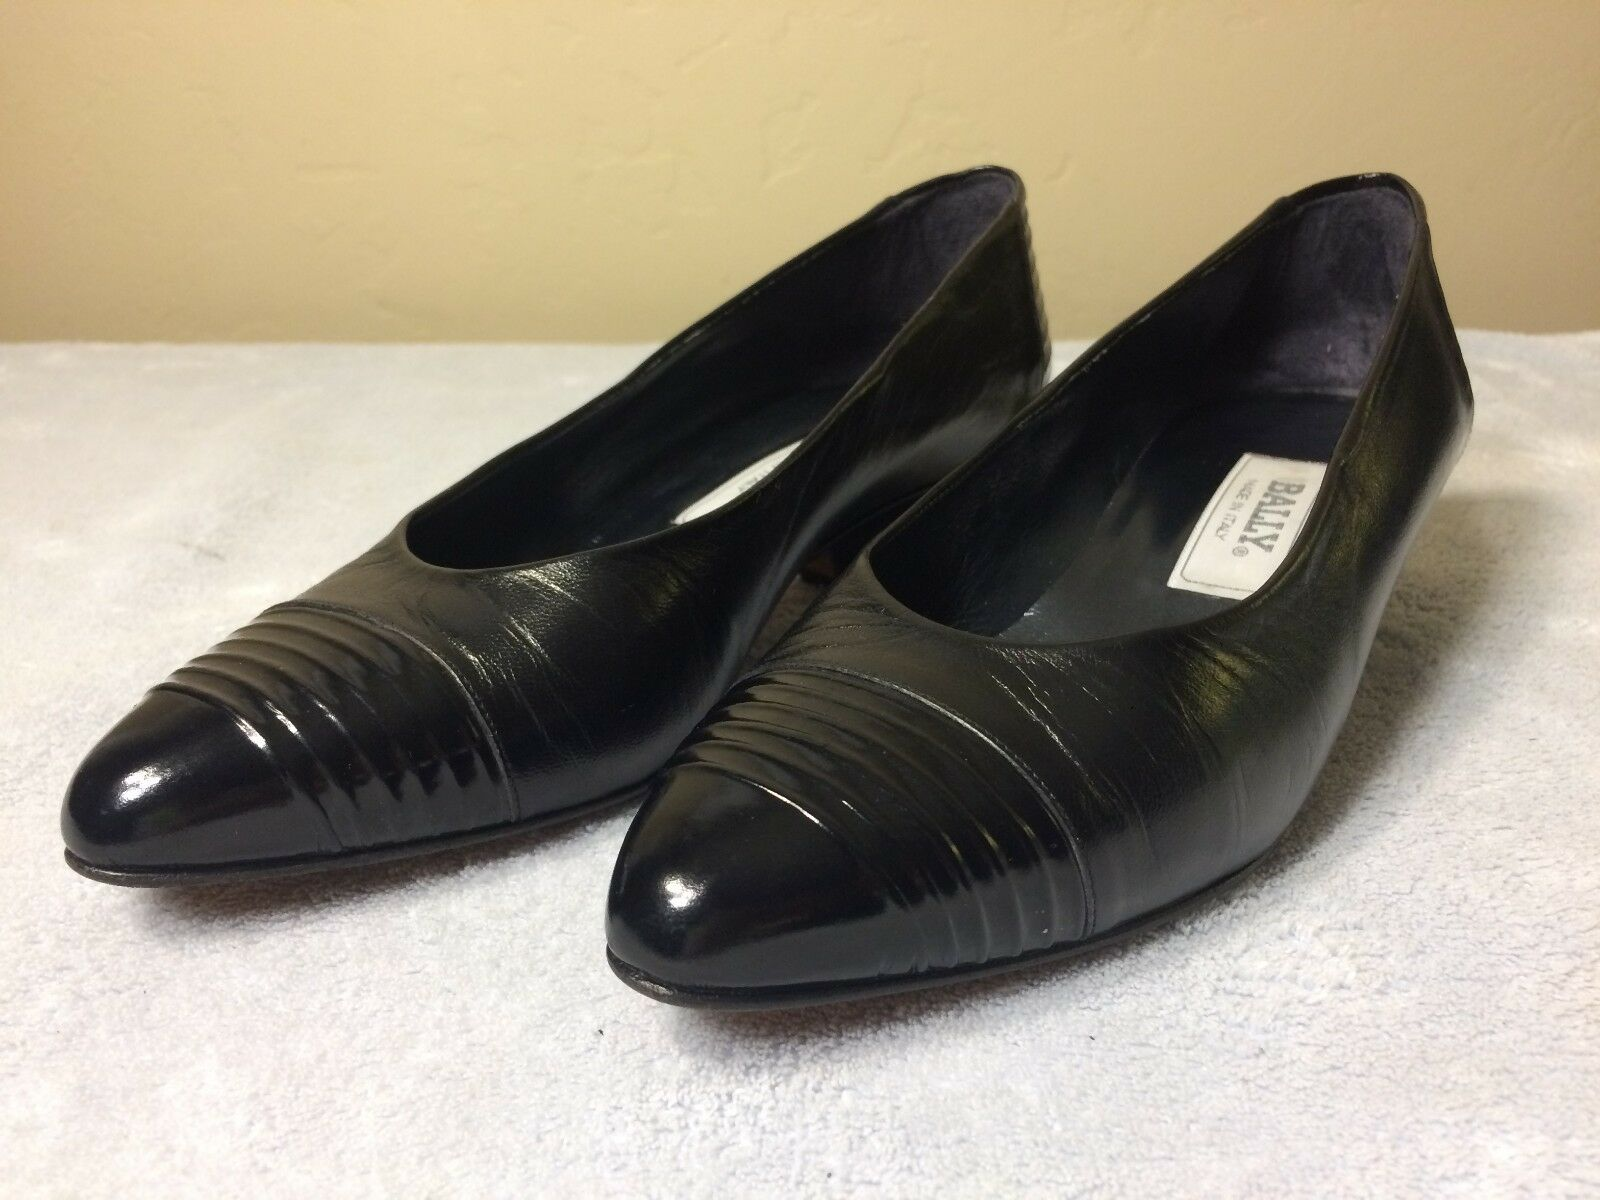 BALLY Womens Leather Shoes Size 7.5 M Slip On Black Heels Pumps Italy Heel 1.25